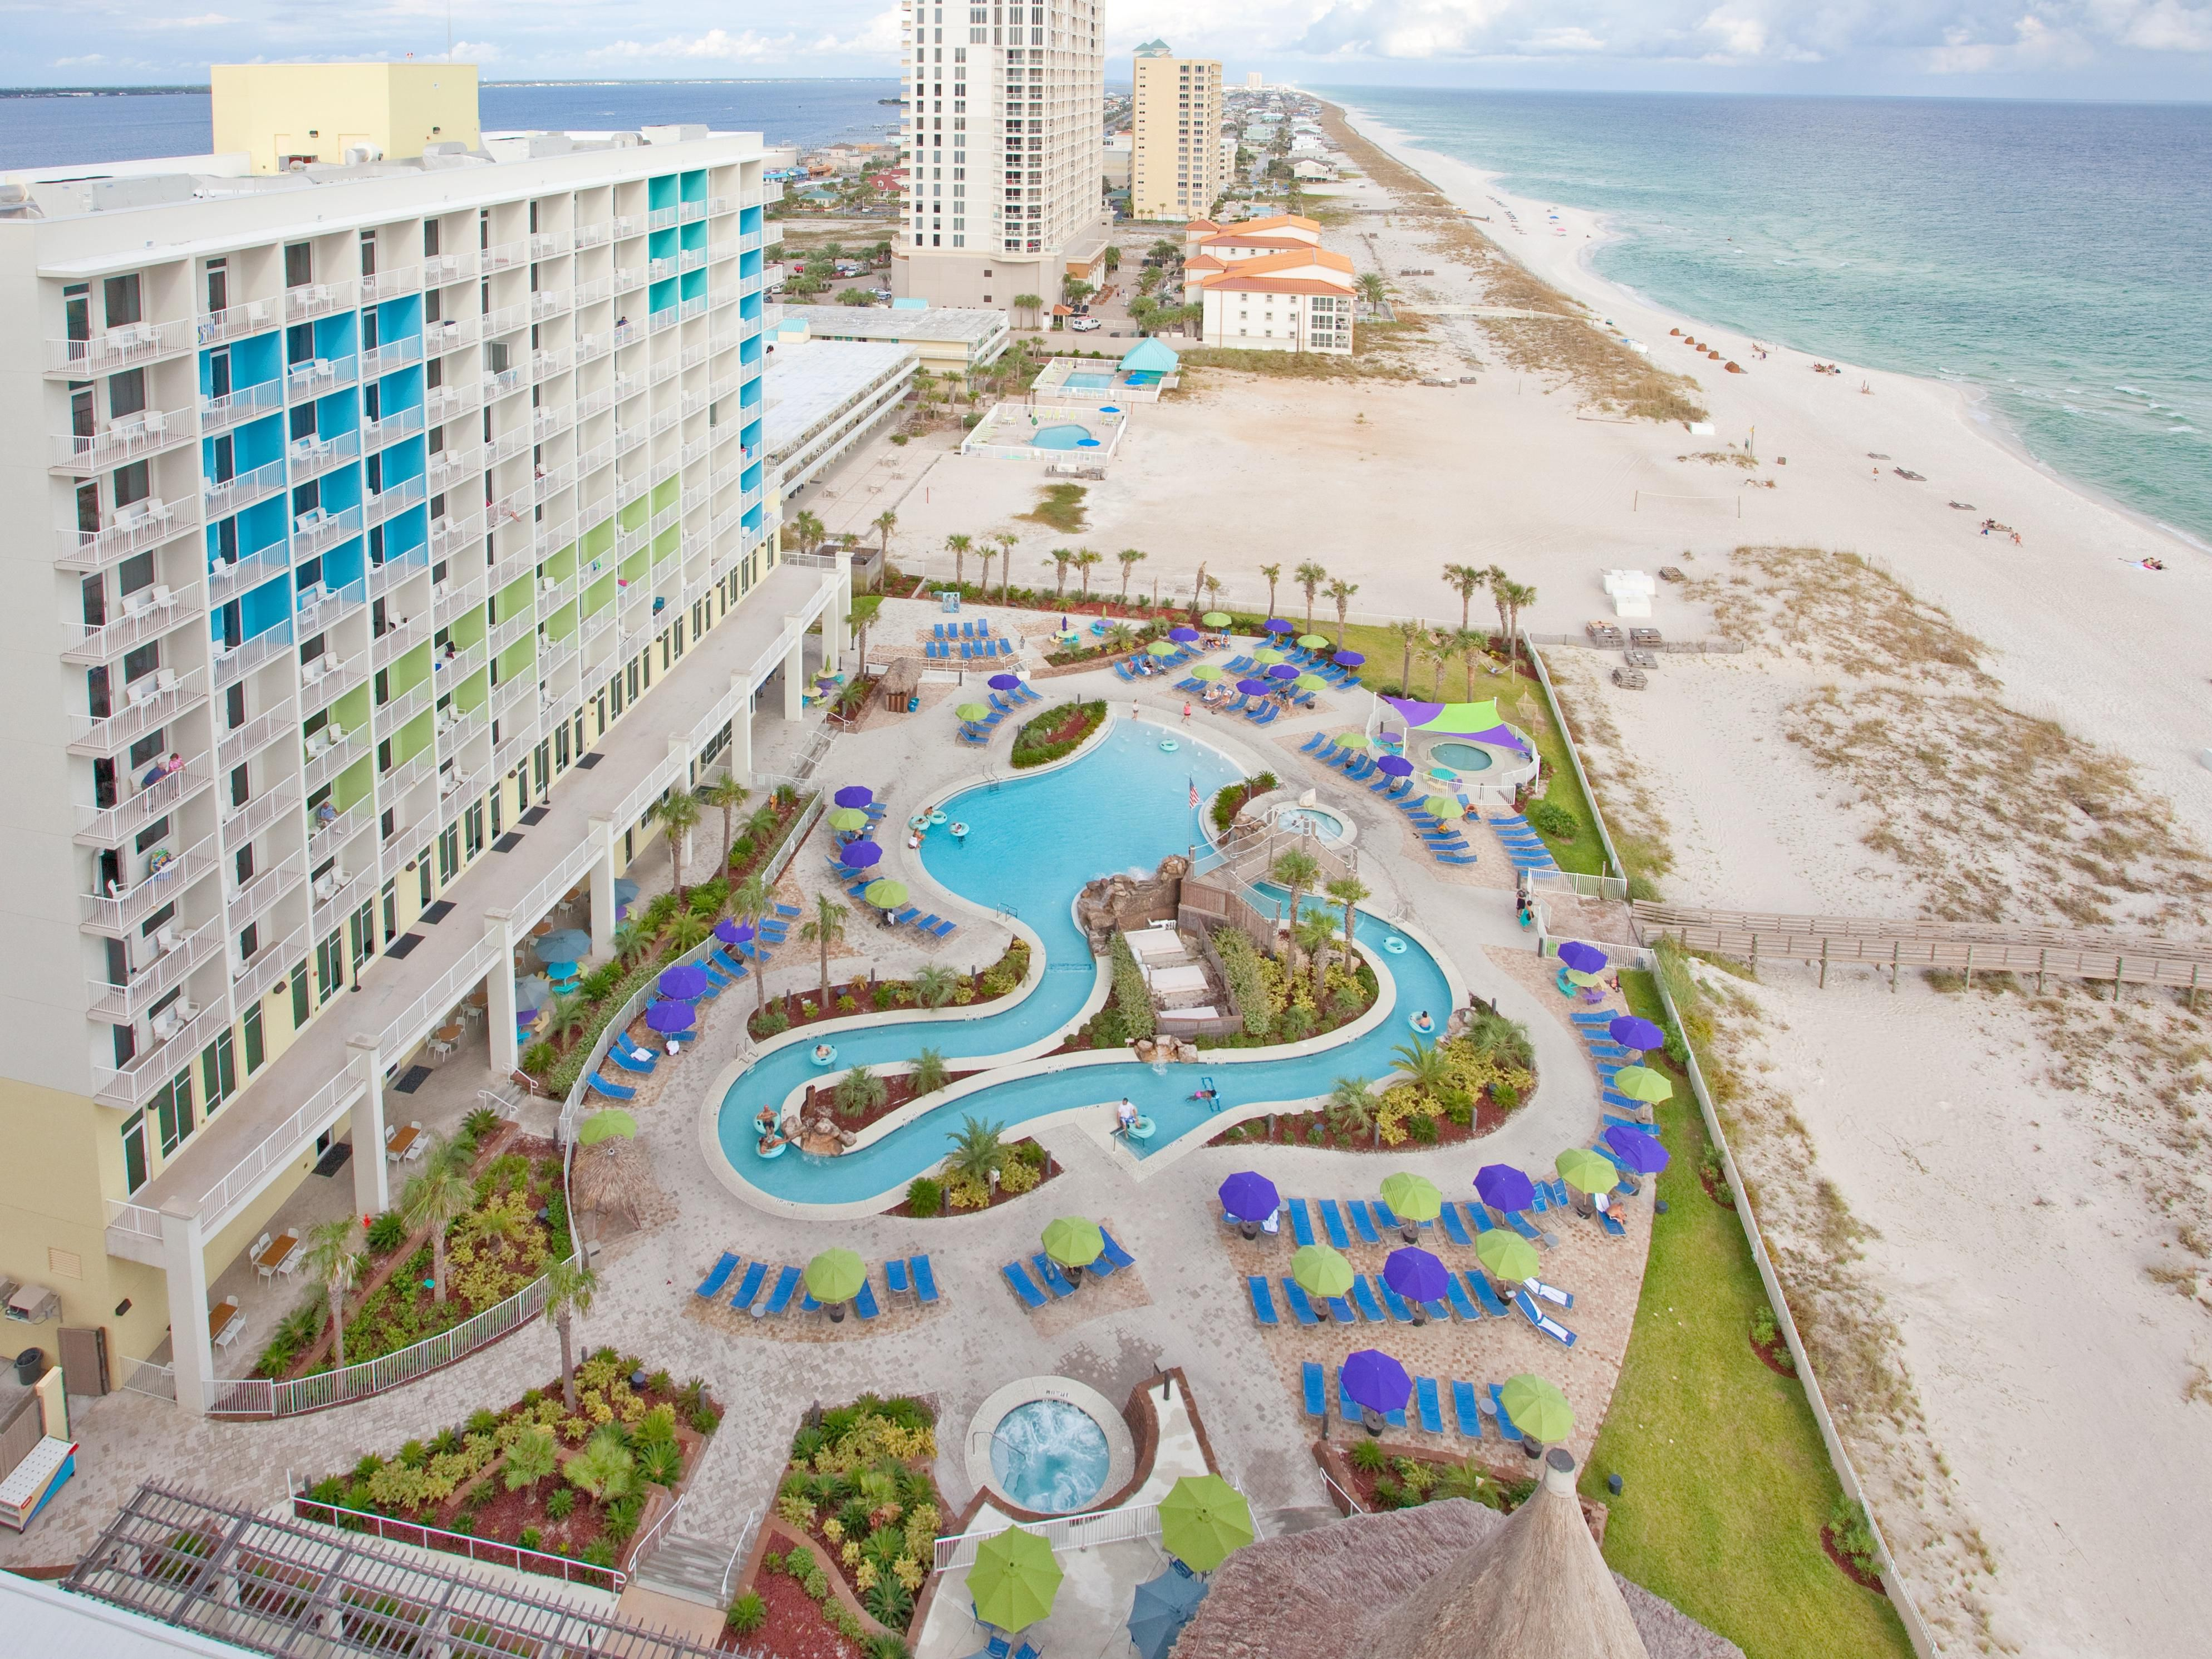 map of hotels in panama city beach fl with Hoteldetail on Hoteldetail besides Omni Resort At Ch ionsgate besides Beachside Resort Panama City Beach United States Of America further Sheraton Sand Key Resort furthermore Hotel.